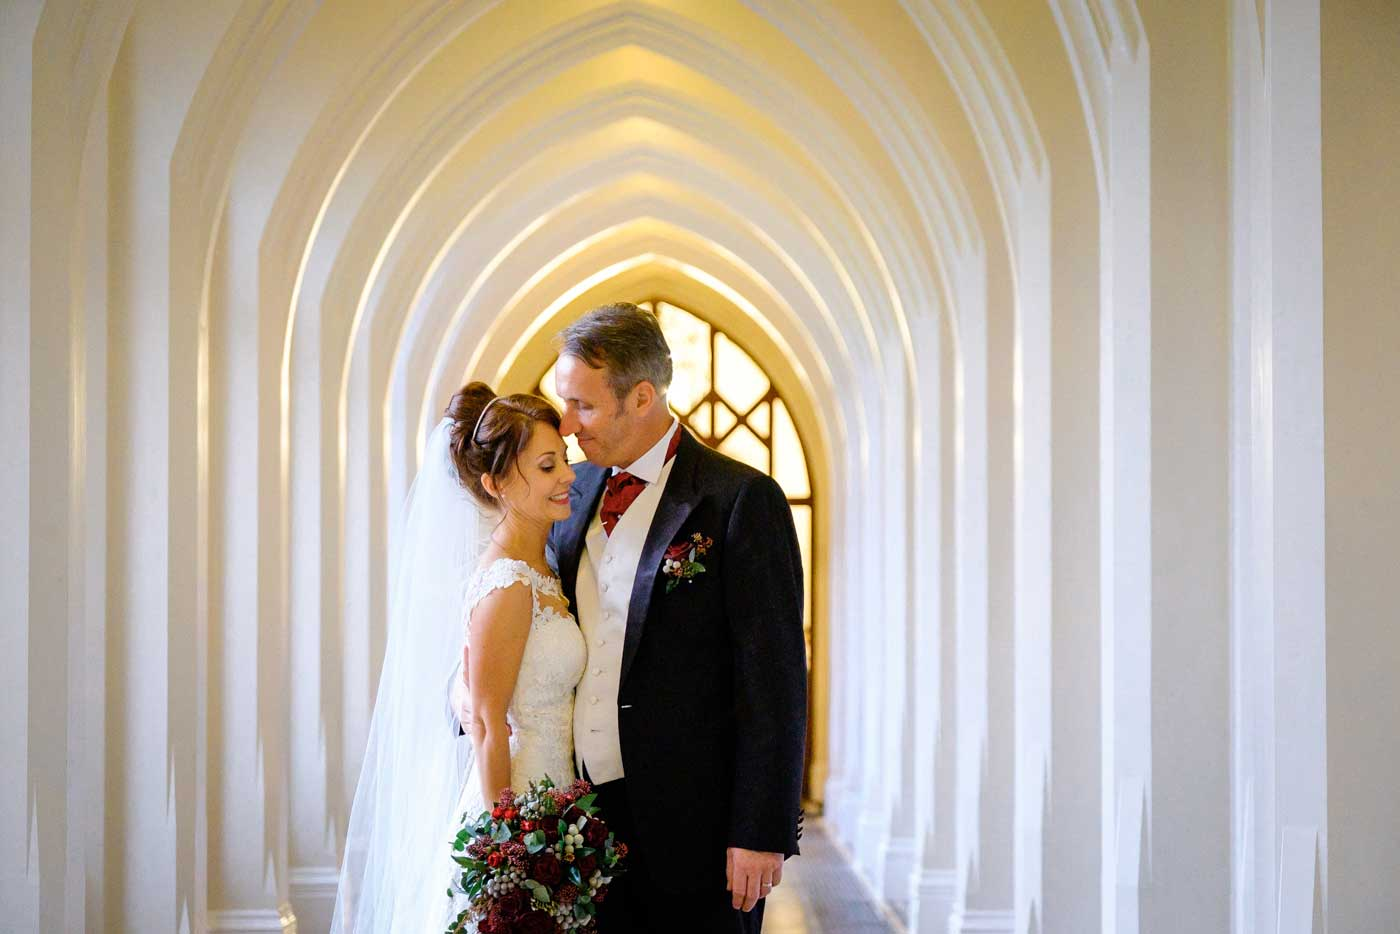 Bride and groom together in the corridor by Stanbrook Abbey wedding photographer Clive Blair Photography